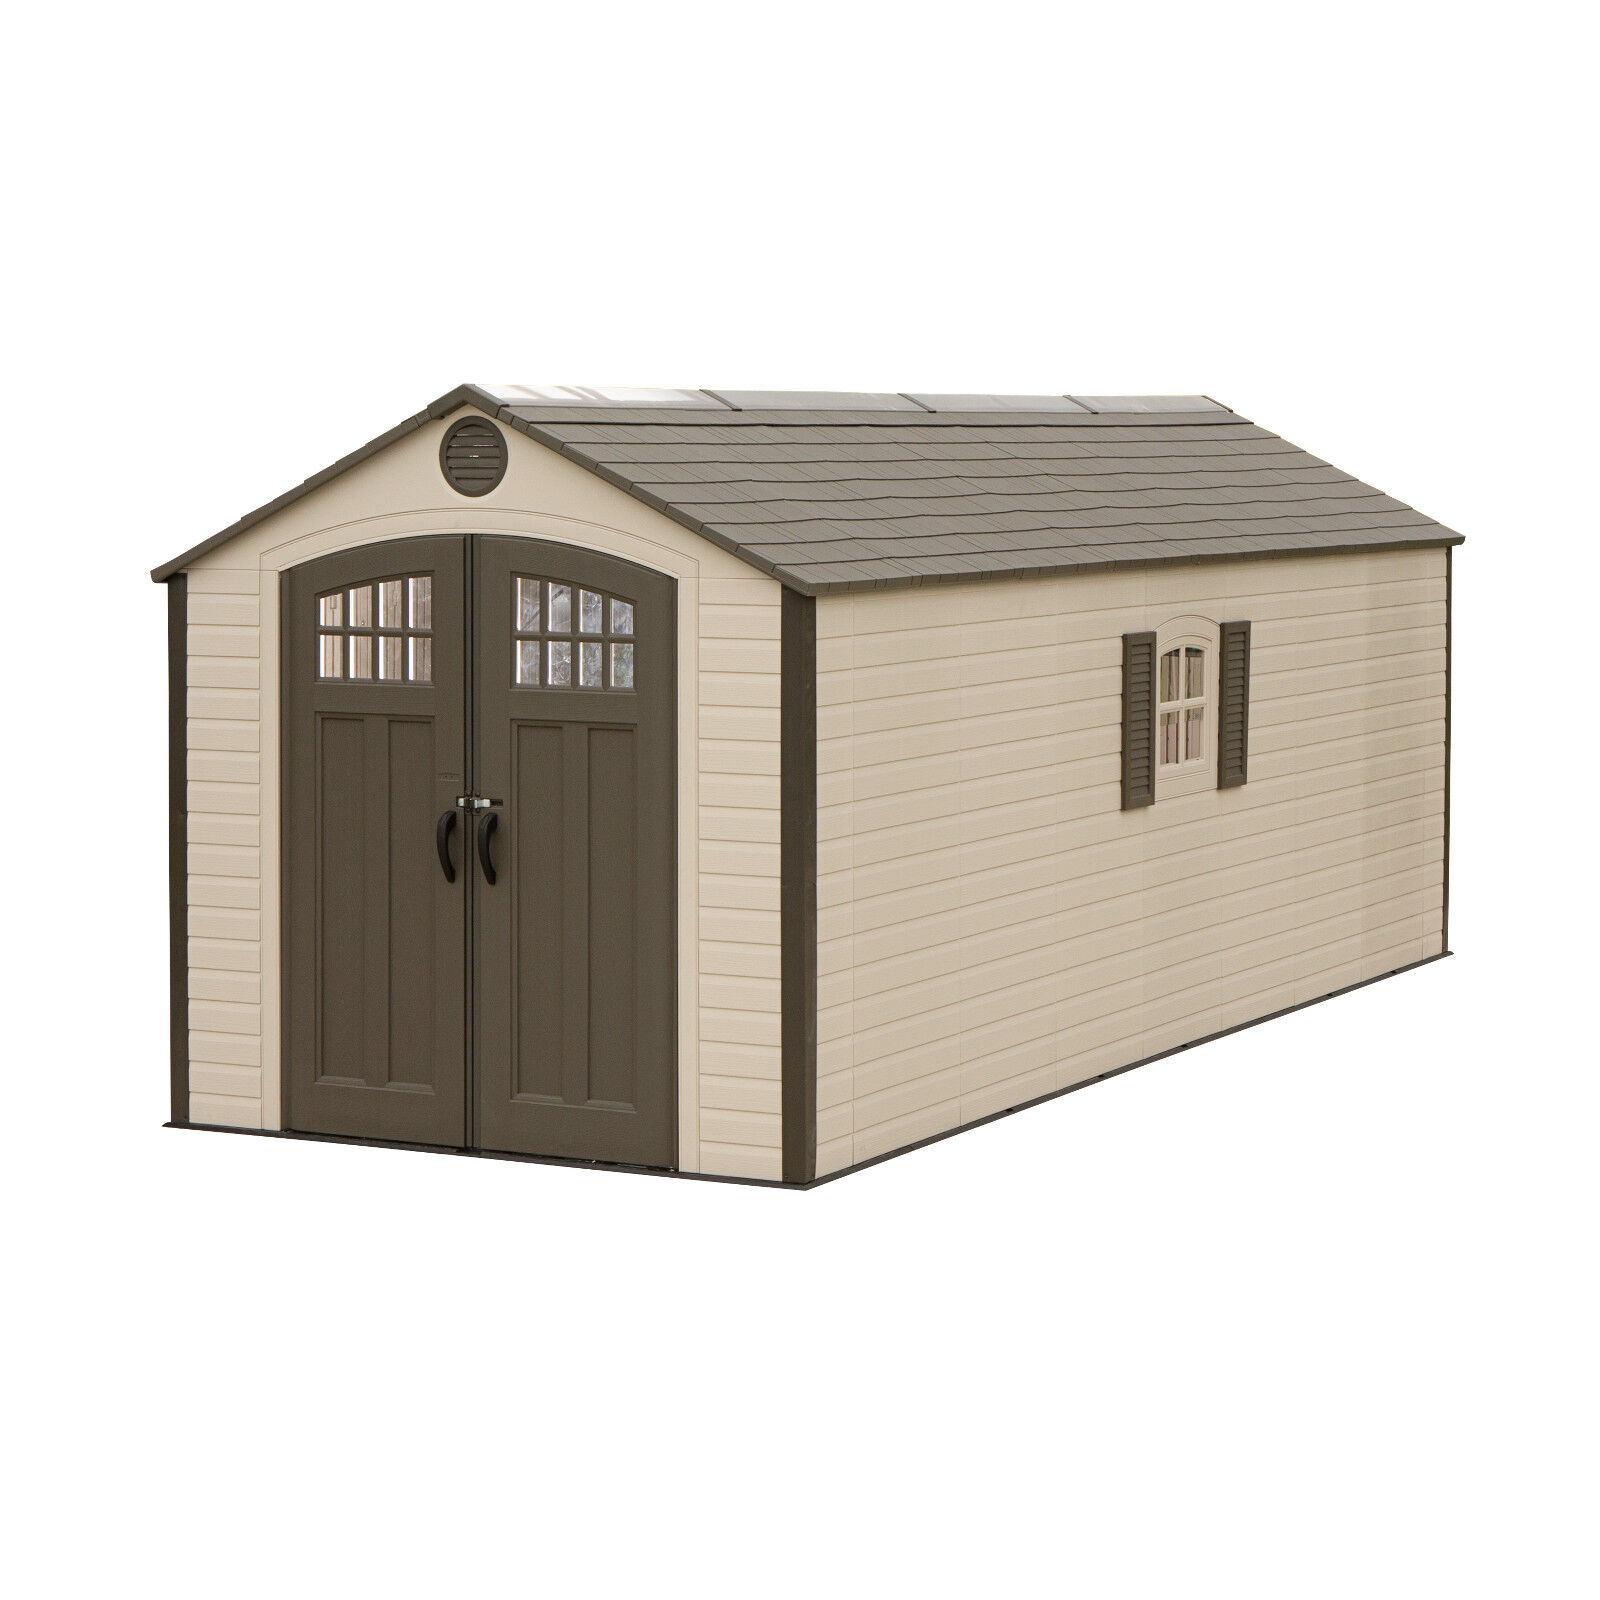 lifetime buildings 20x8 dual entry outdoor storage shed kit w 2